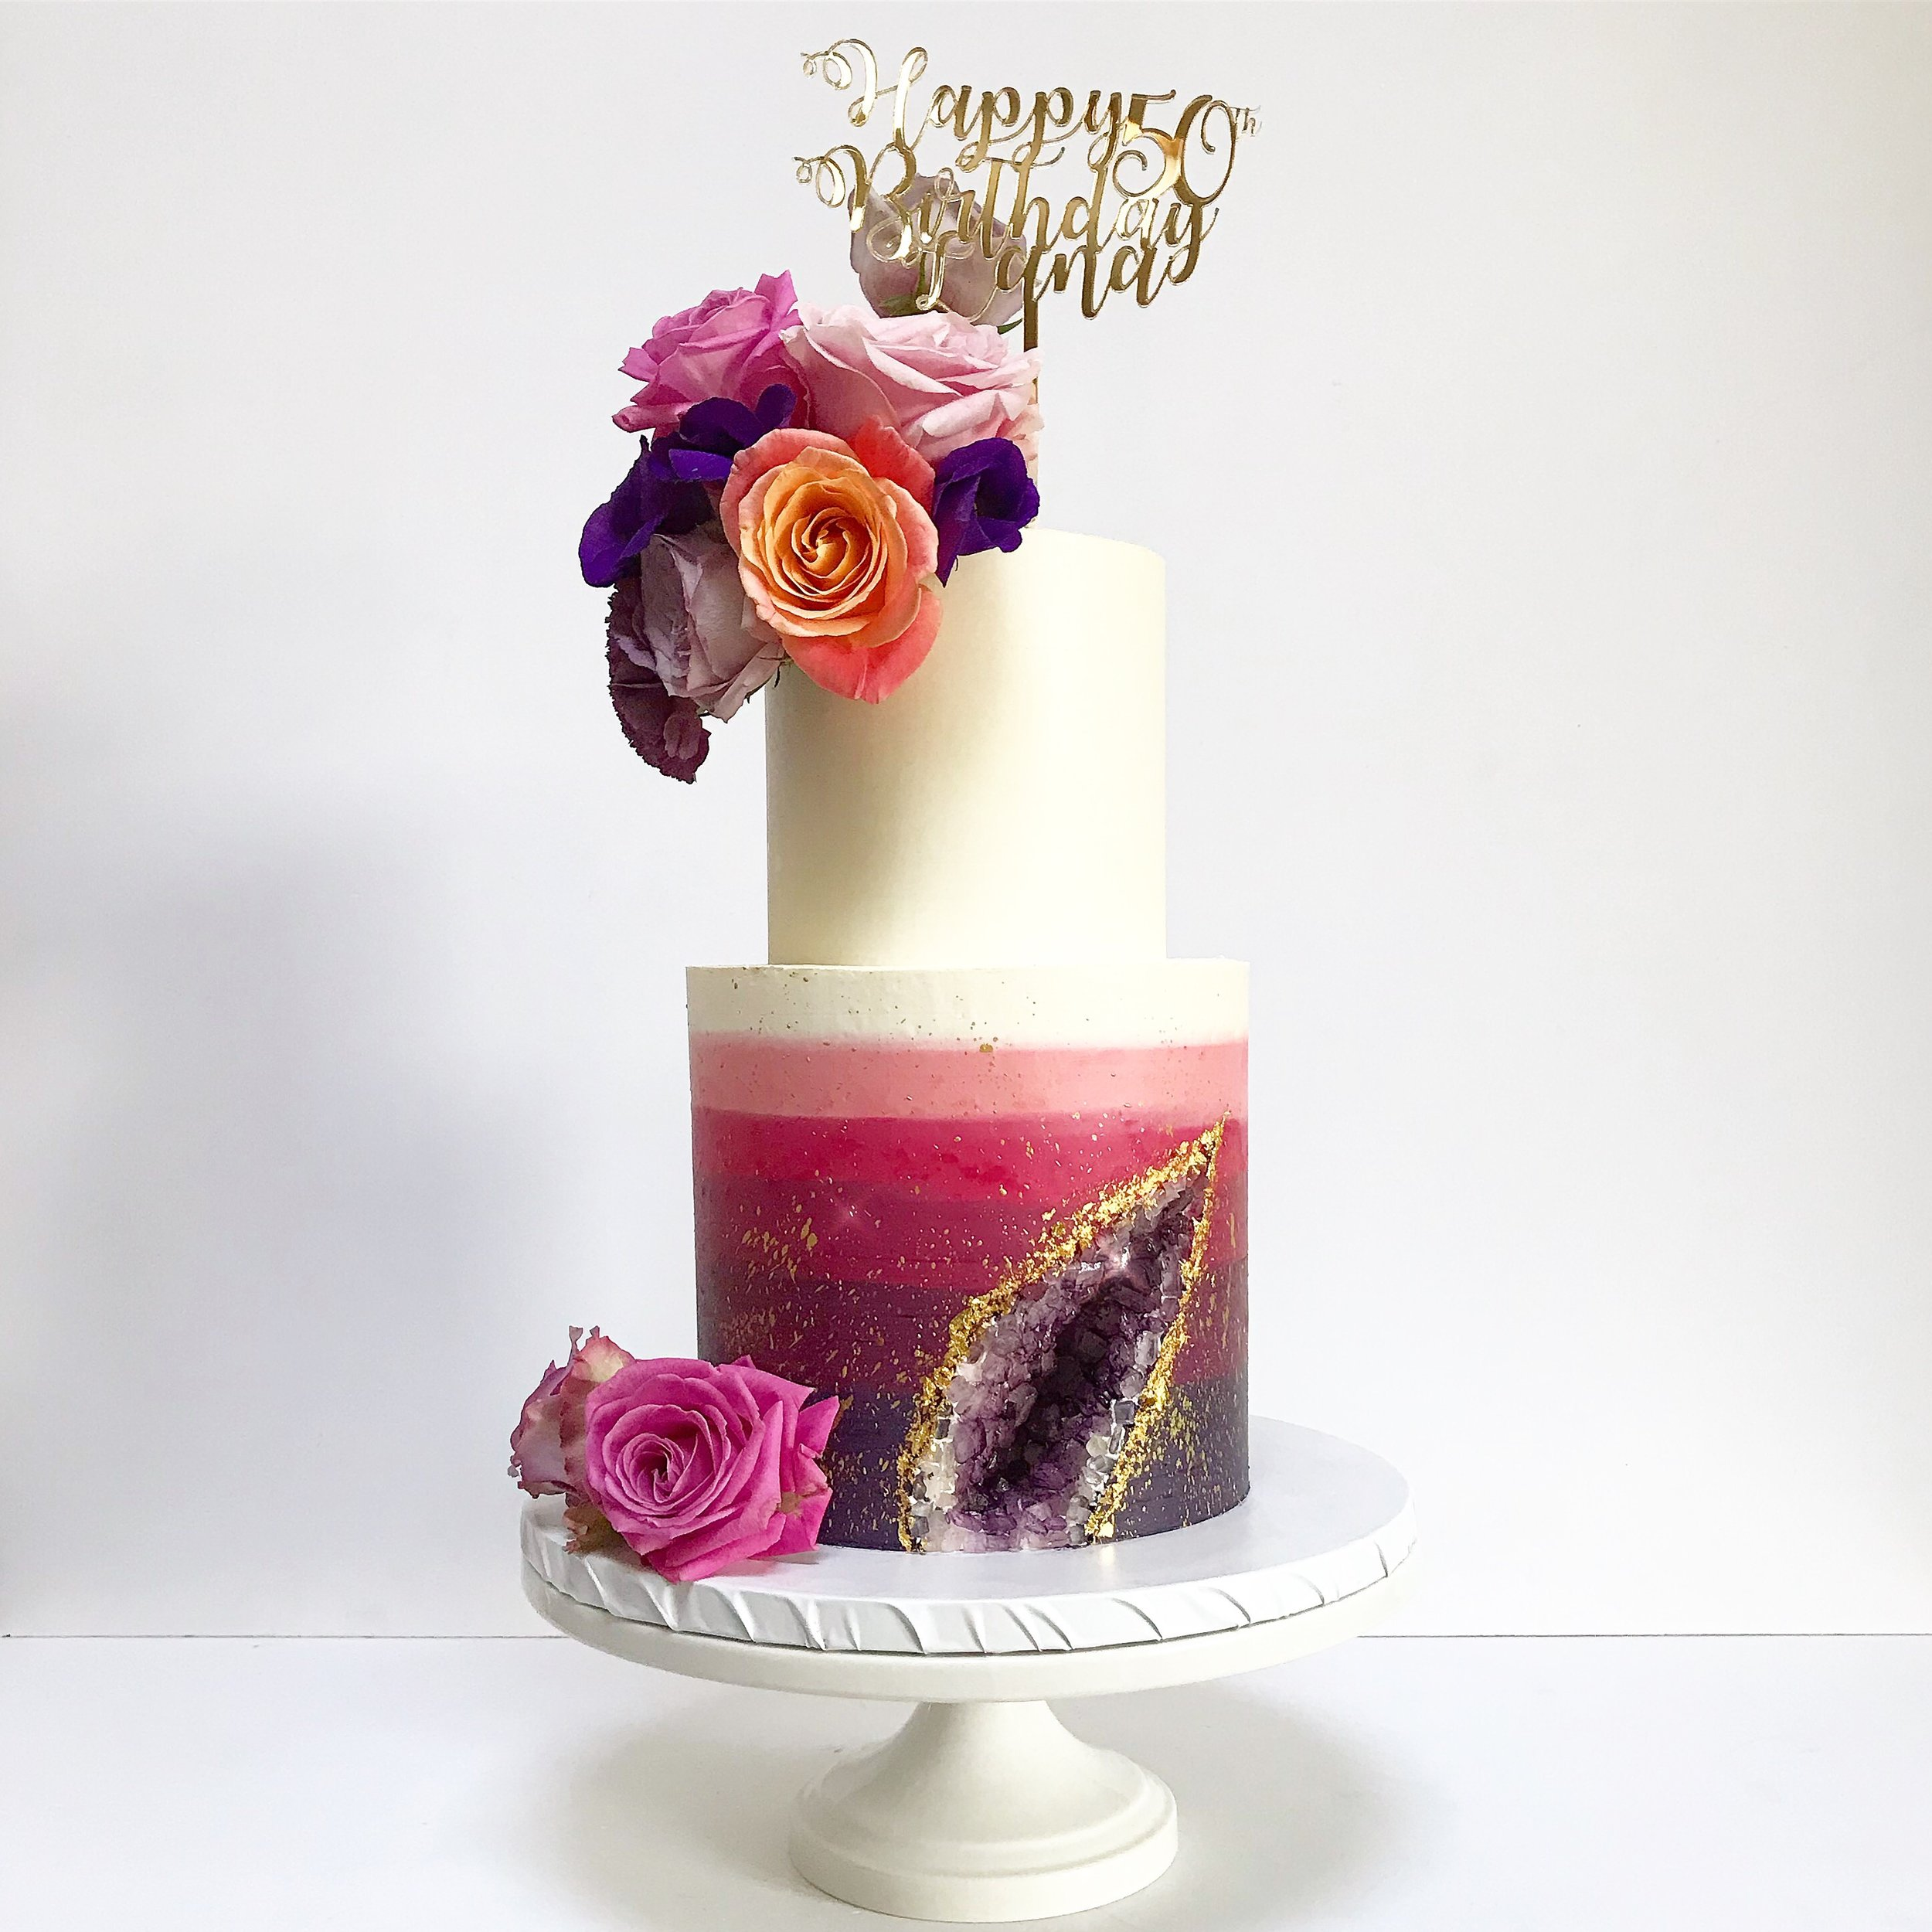 Bespoke Celebration Cakes -